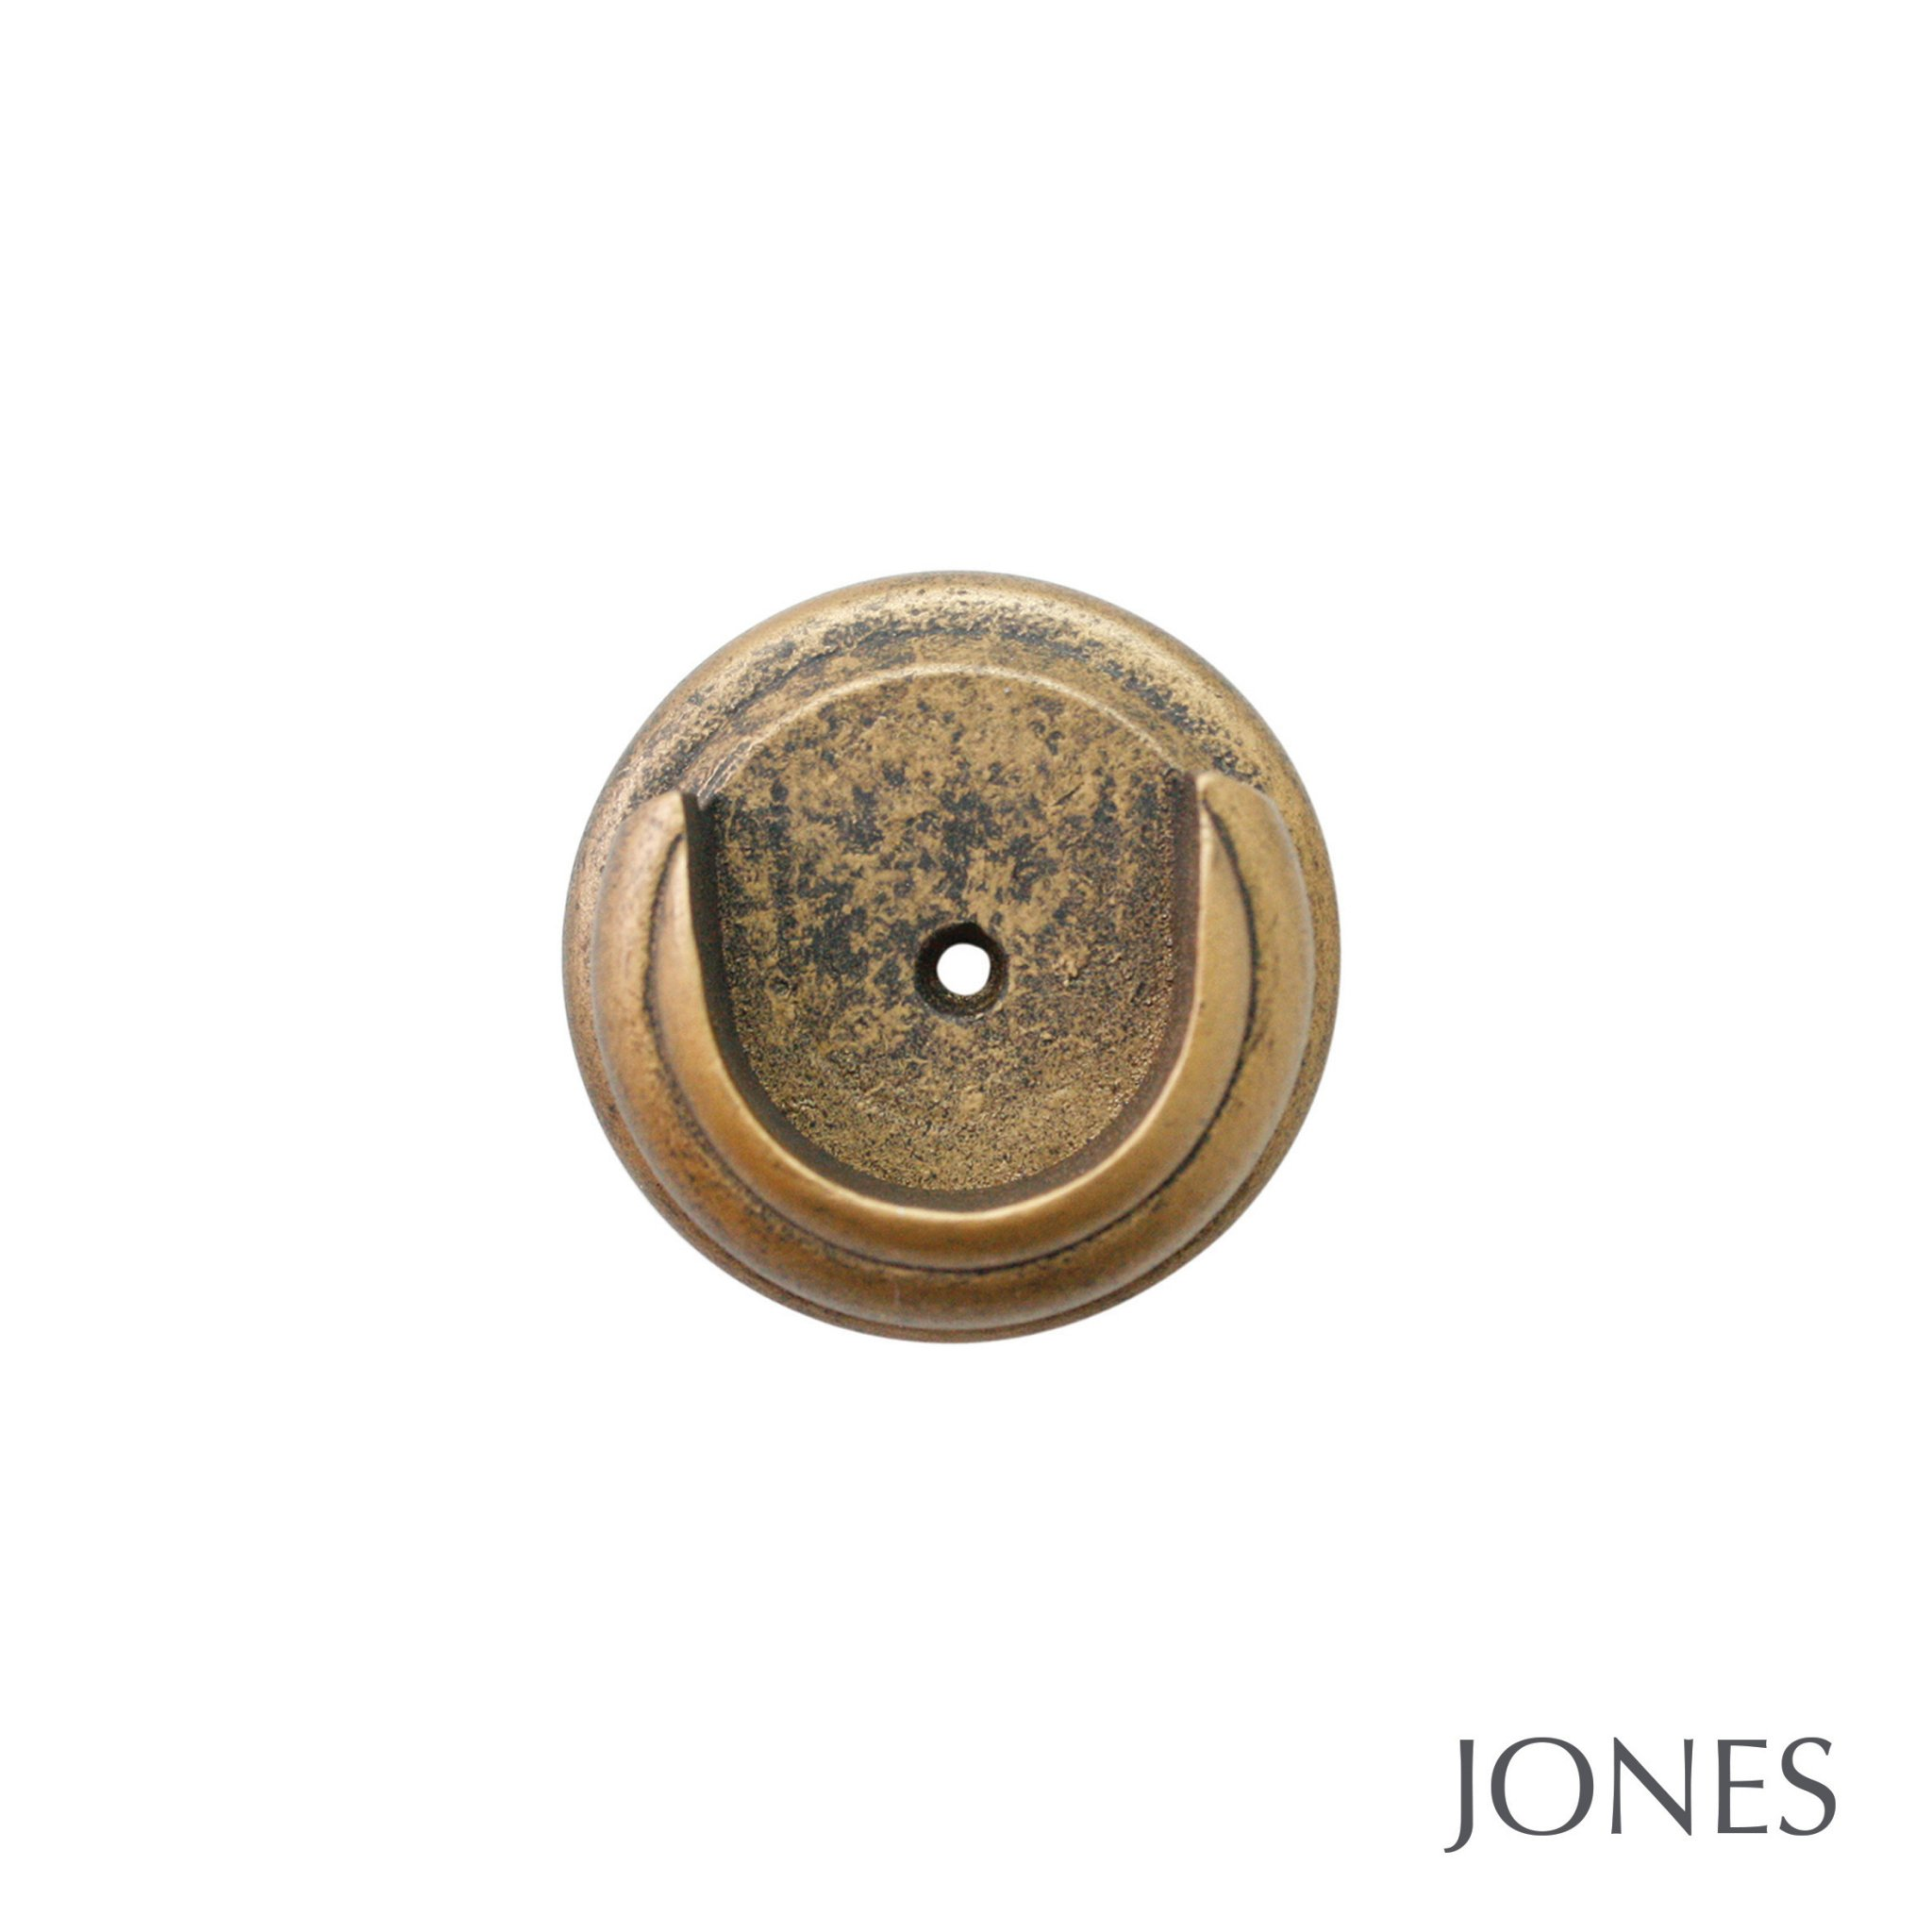 Jones Florentine Handcrafted 50mm Recess Brackets